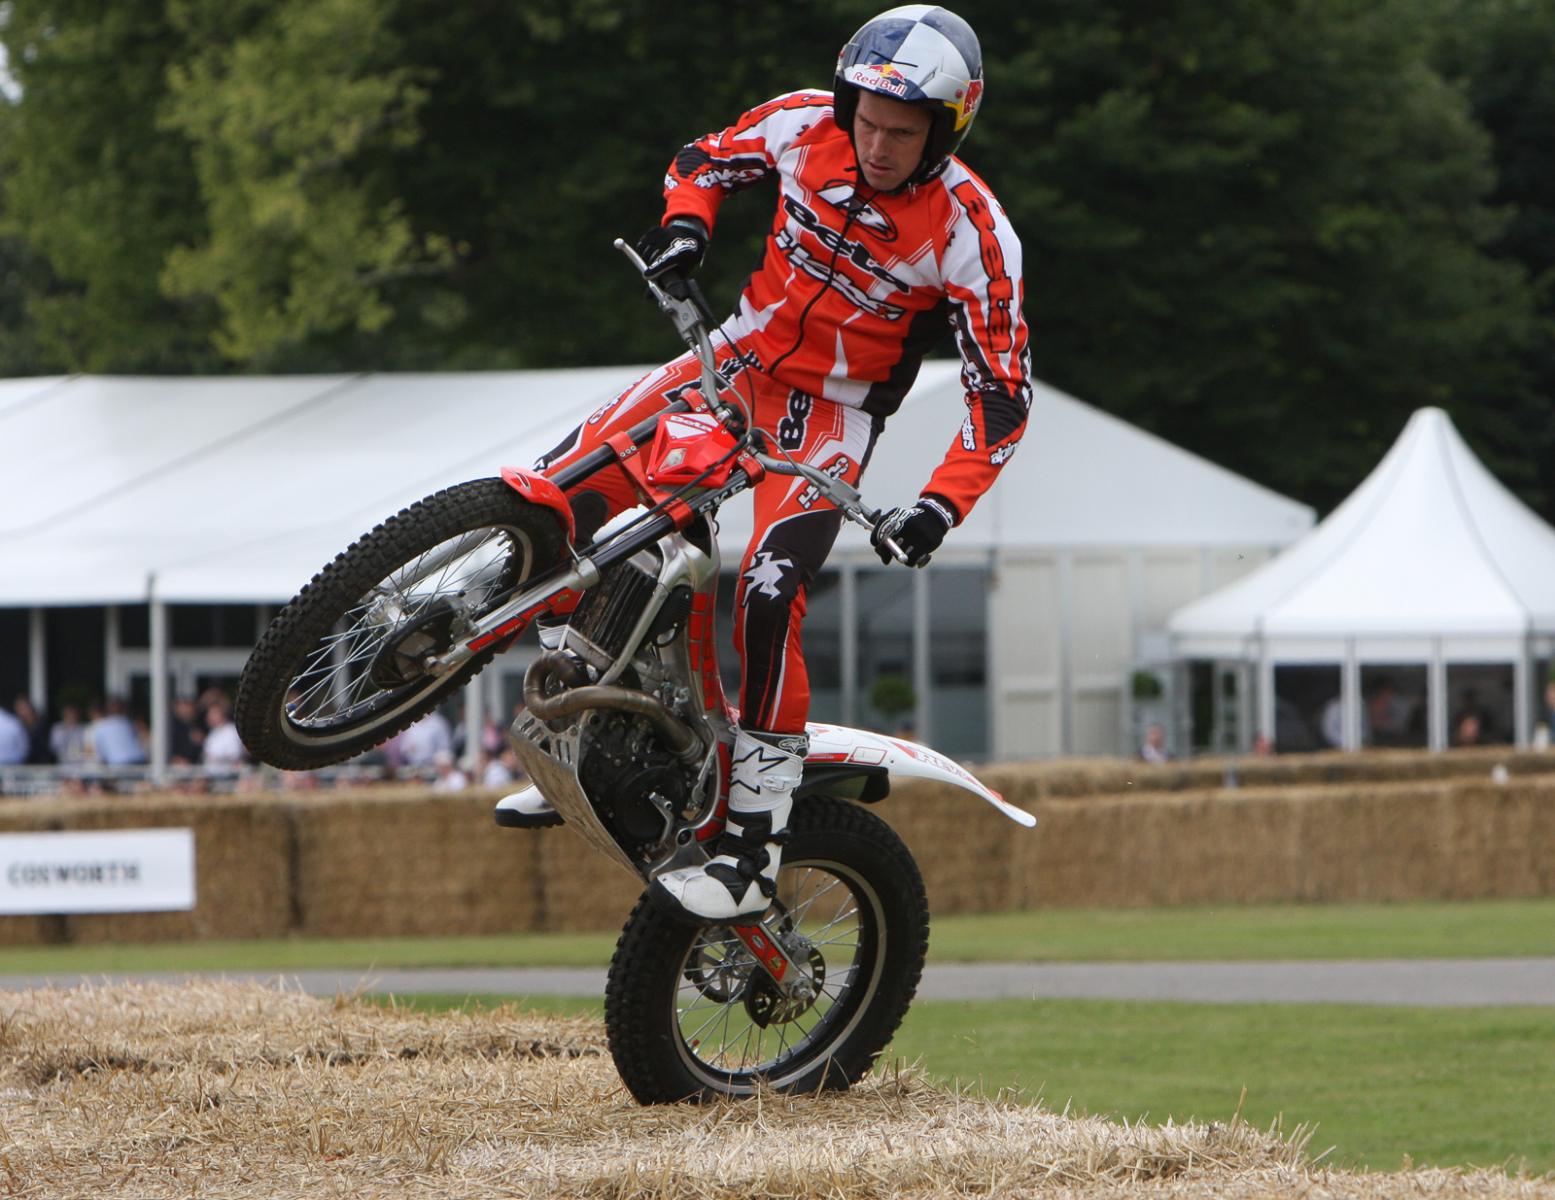 20080711 - Goodwood Festival of Speed -080711 -013